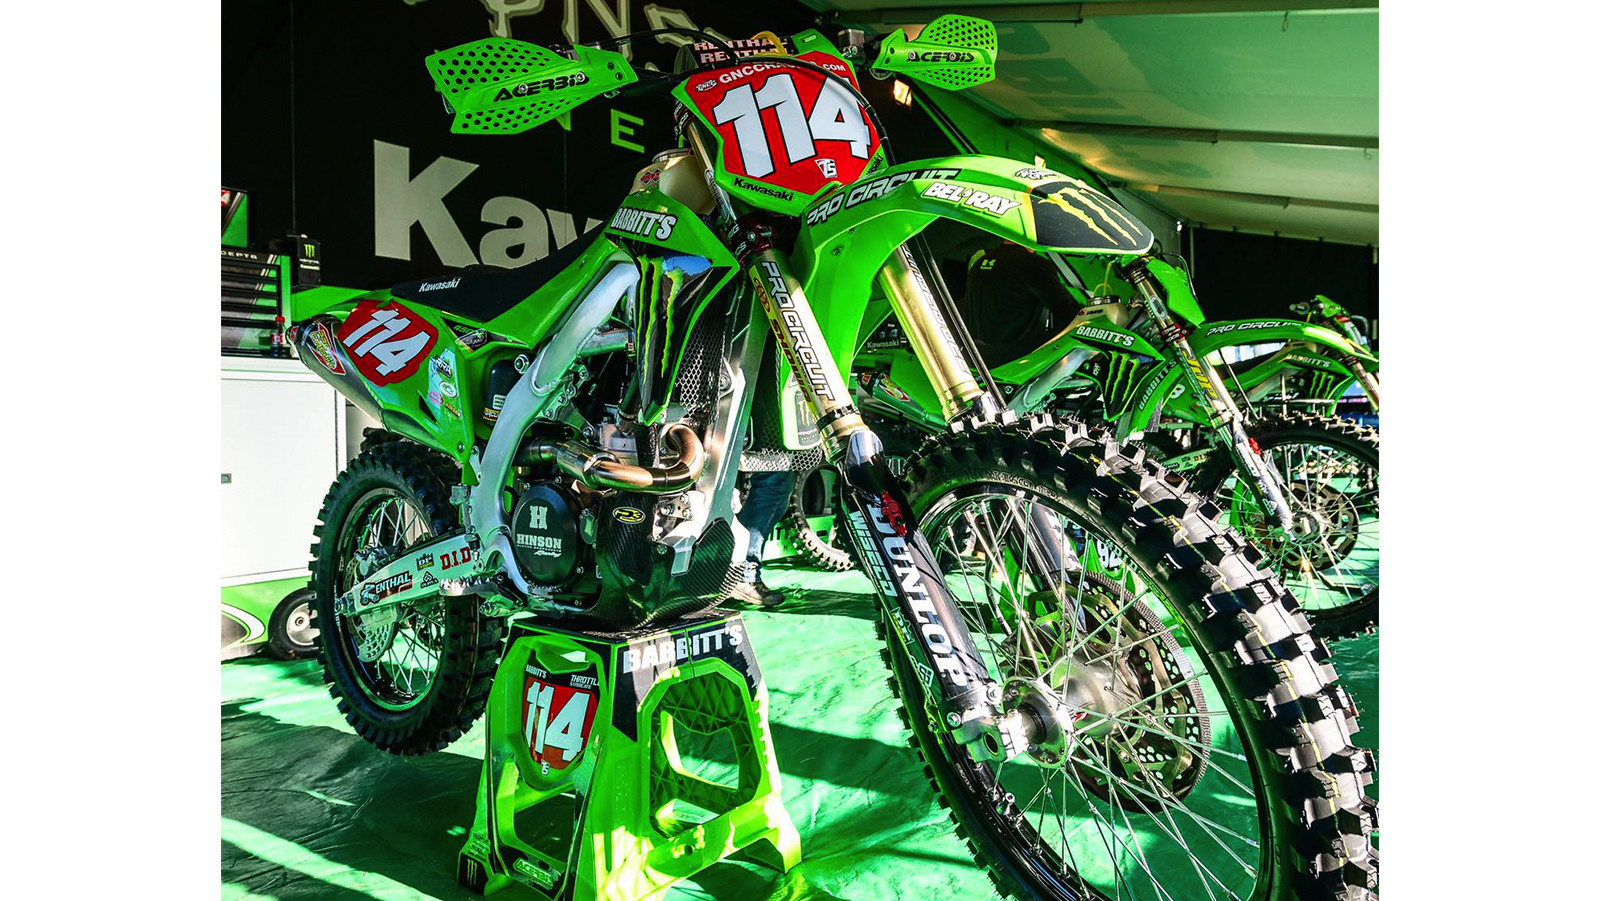 Bel-Ray Named Official Sponsor of Team Babbitt's Monster Energy Kawasaki